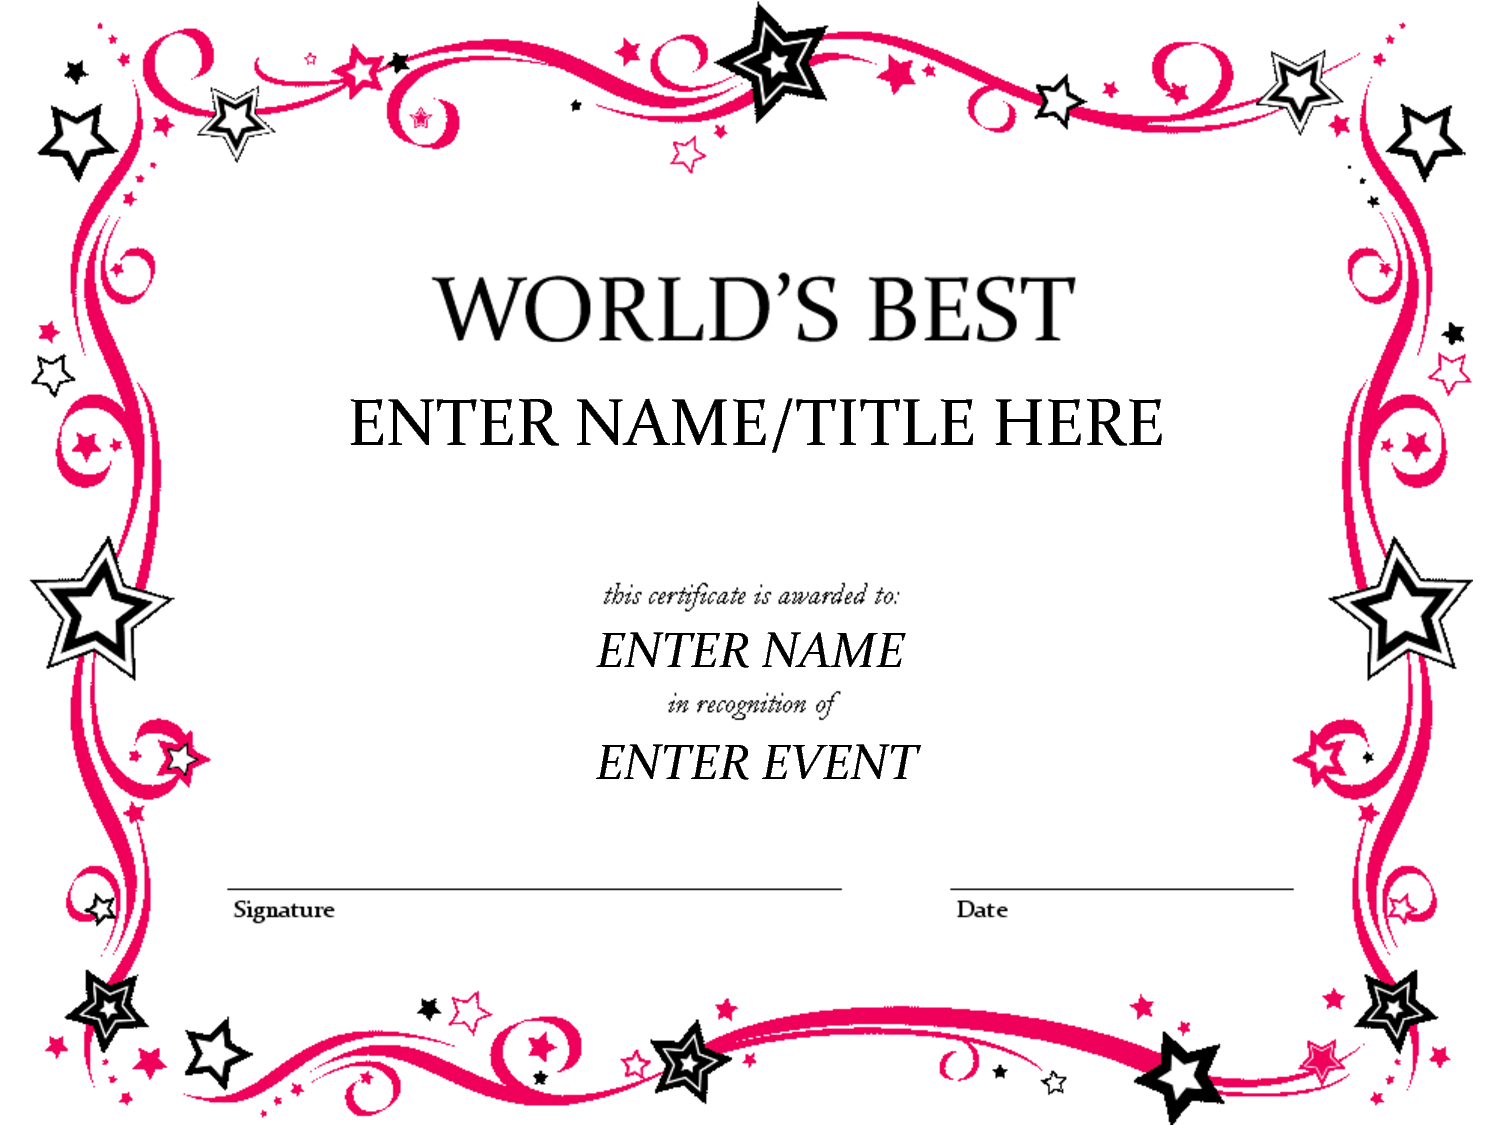 design your own certificate templates free - free funny award certificates templates worlds best